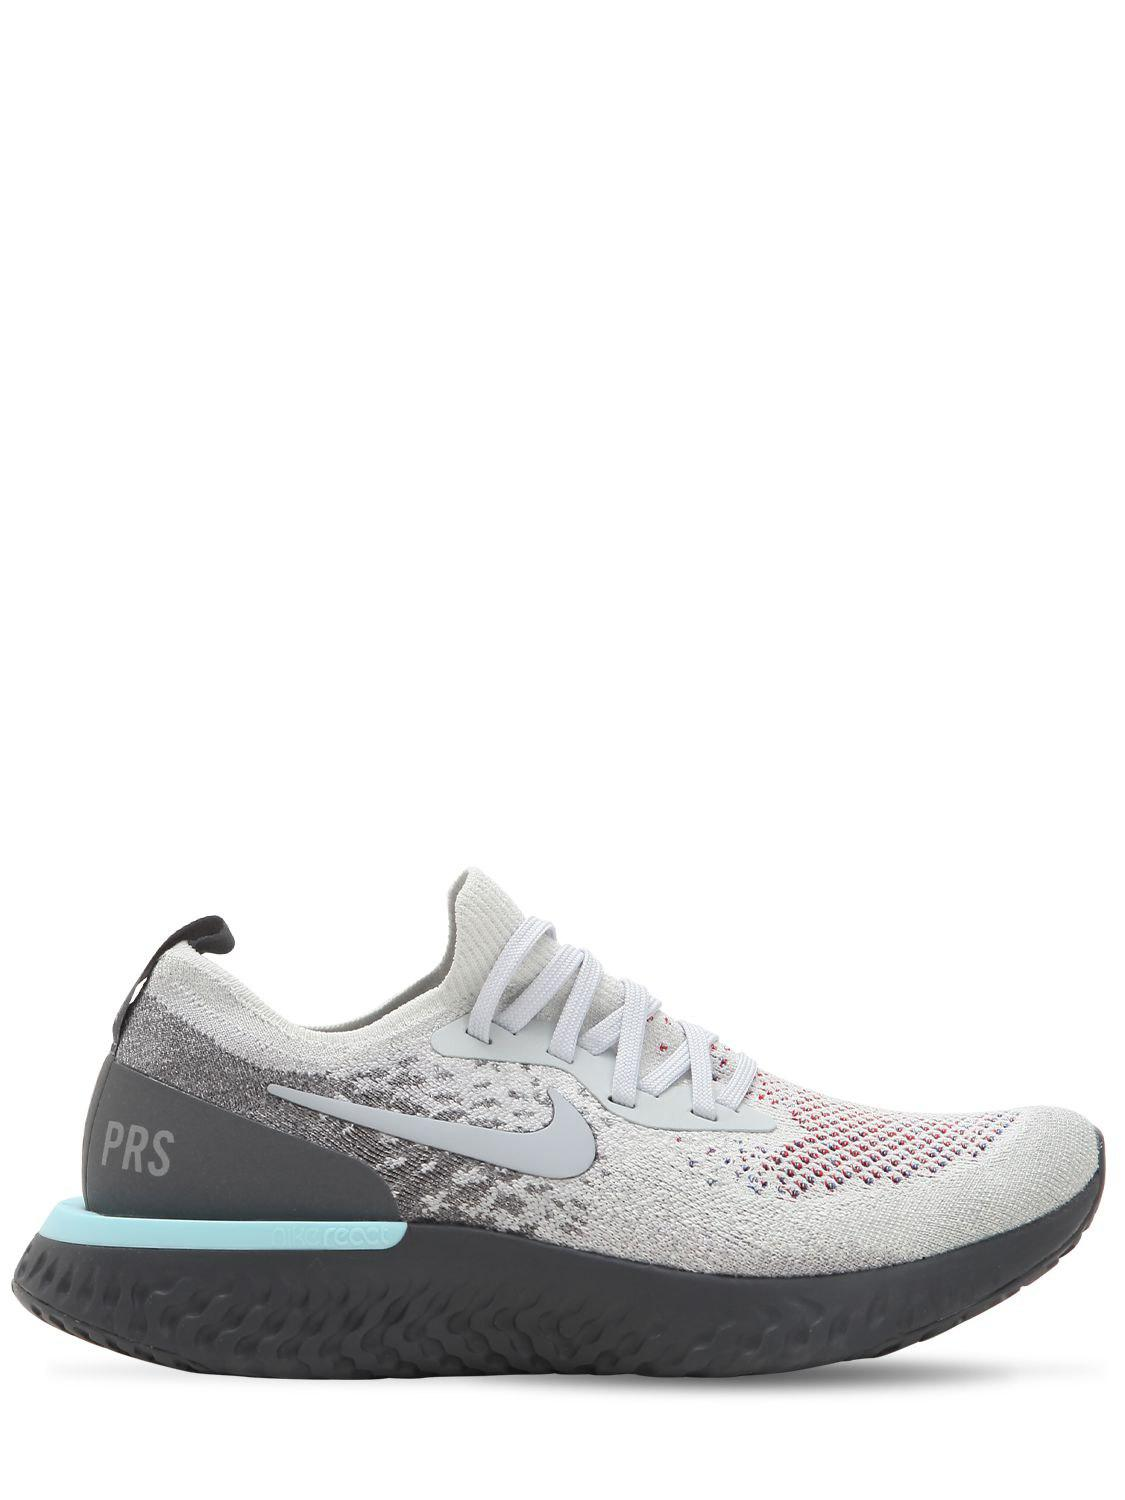 957bc99d339f Lyst - Nike Epic React Flyknit Sneakers in Gray for Men